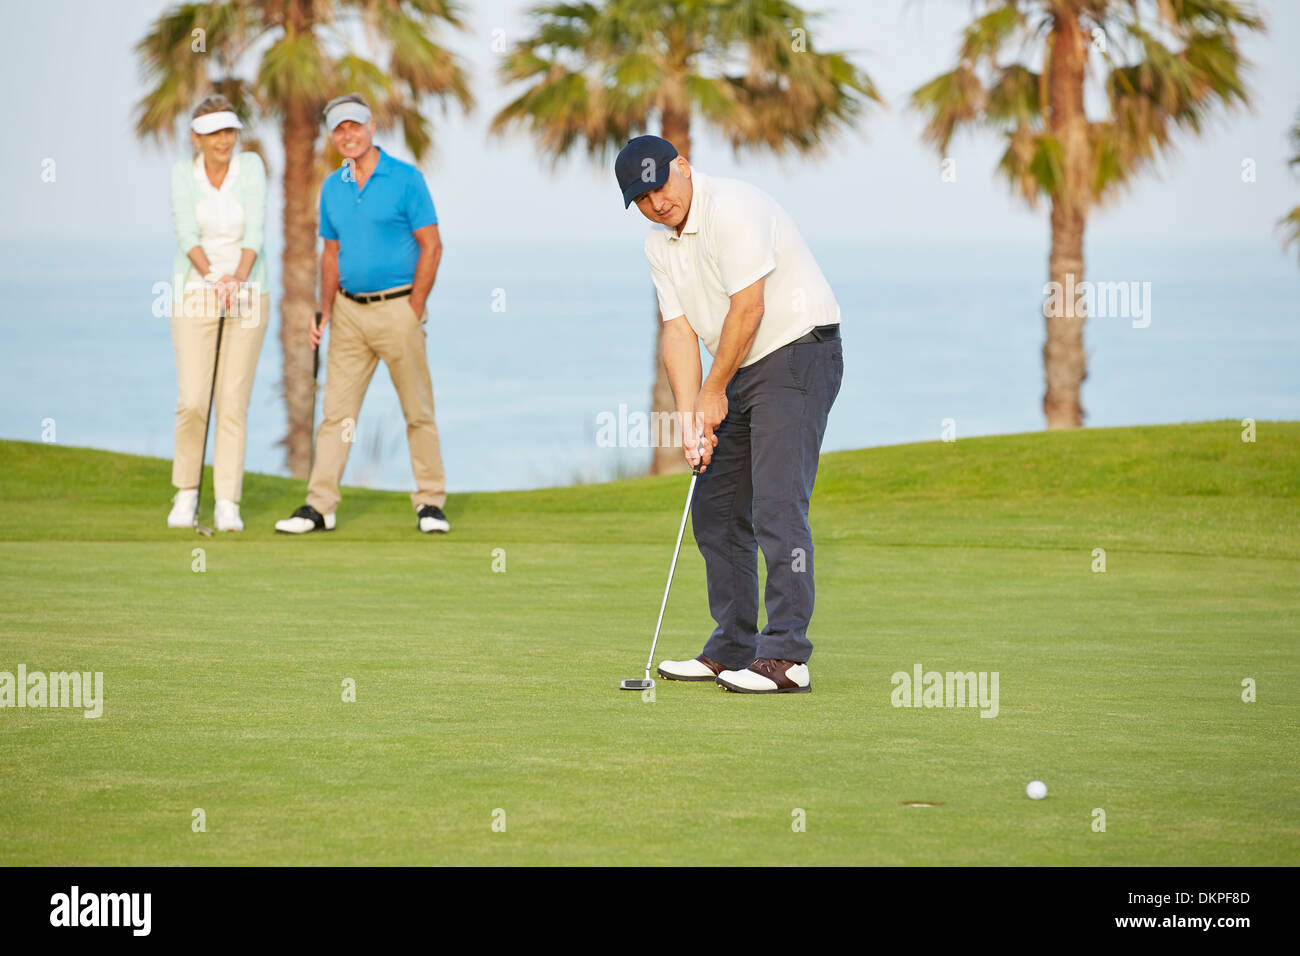 Senior friends playing golf on course Photo Stock